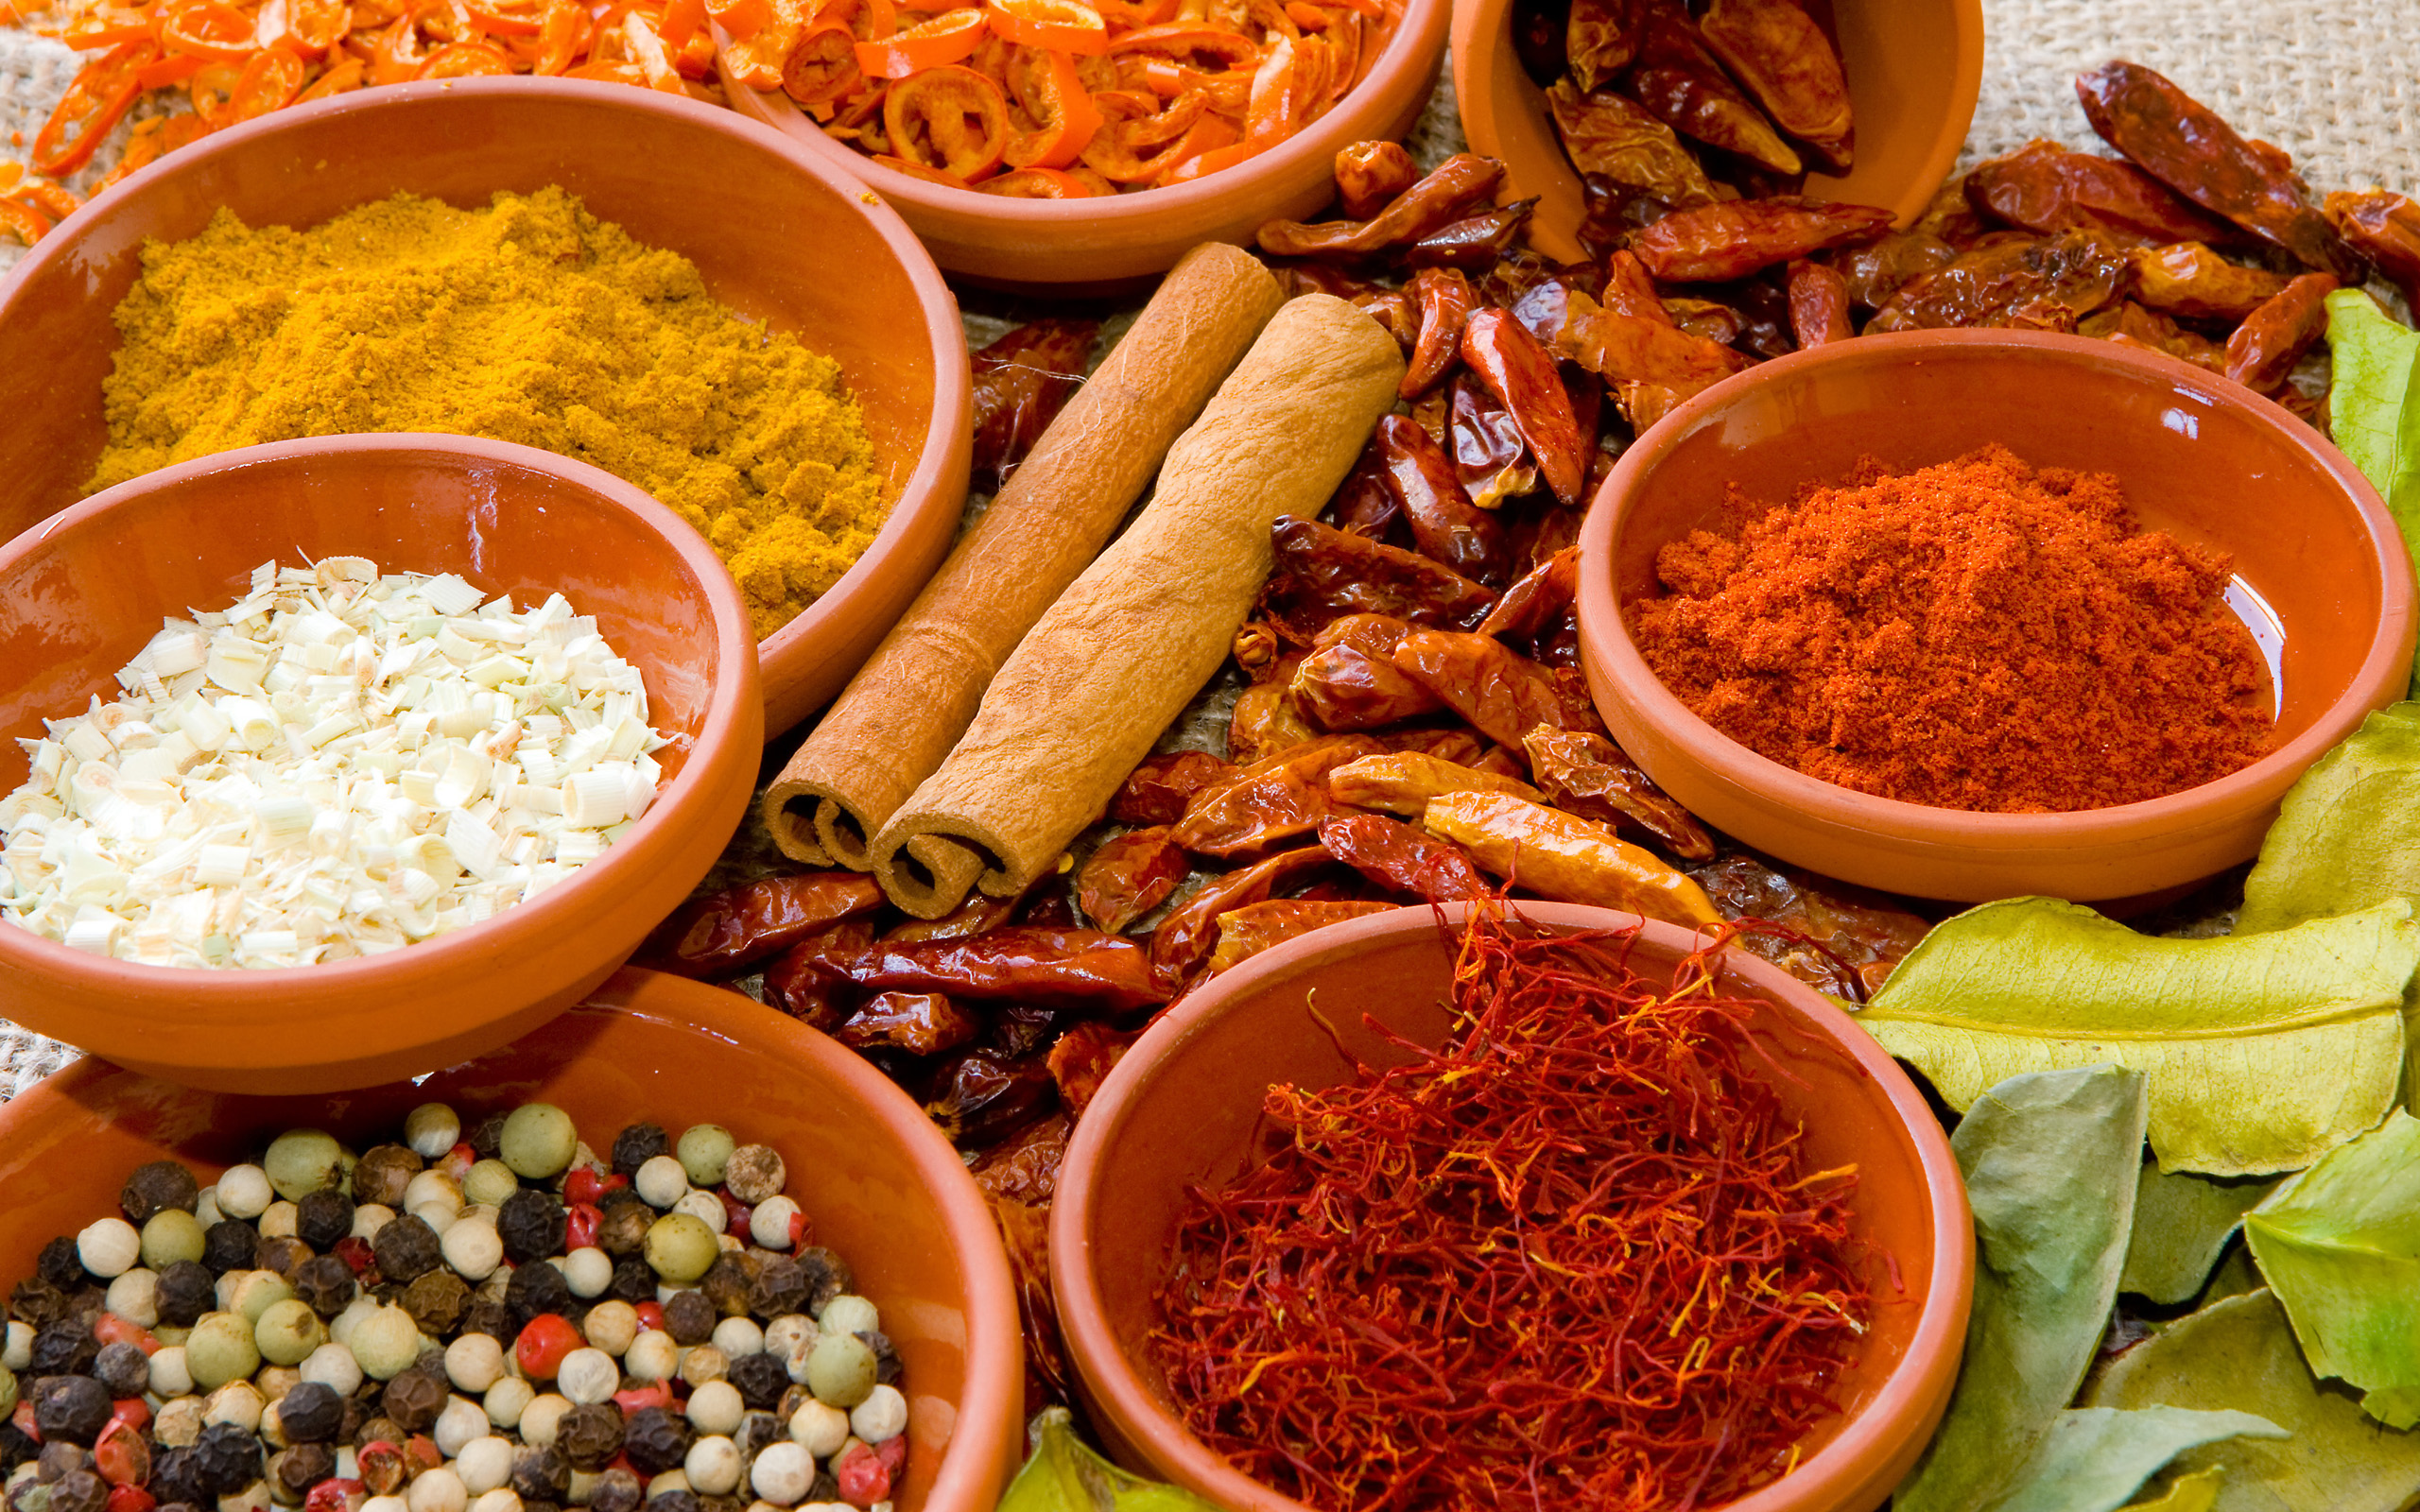 Spice wholesalers, Spice distributors, Spices companies